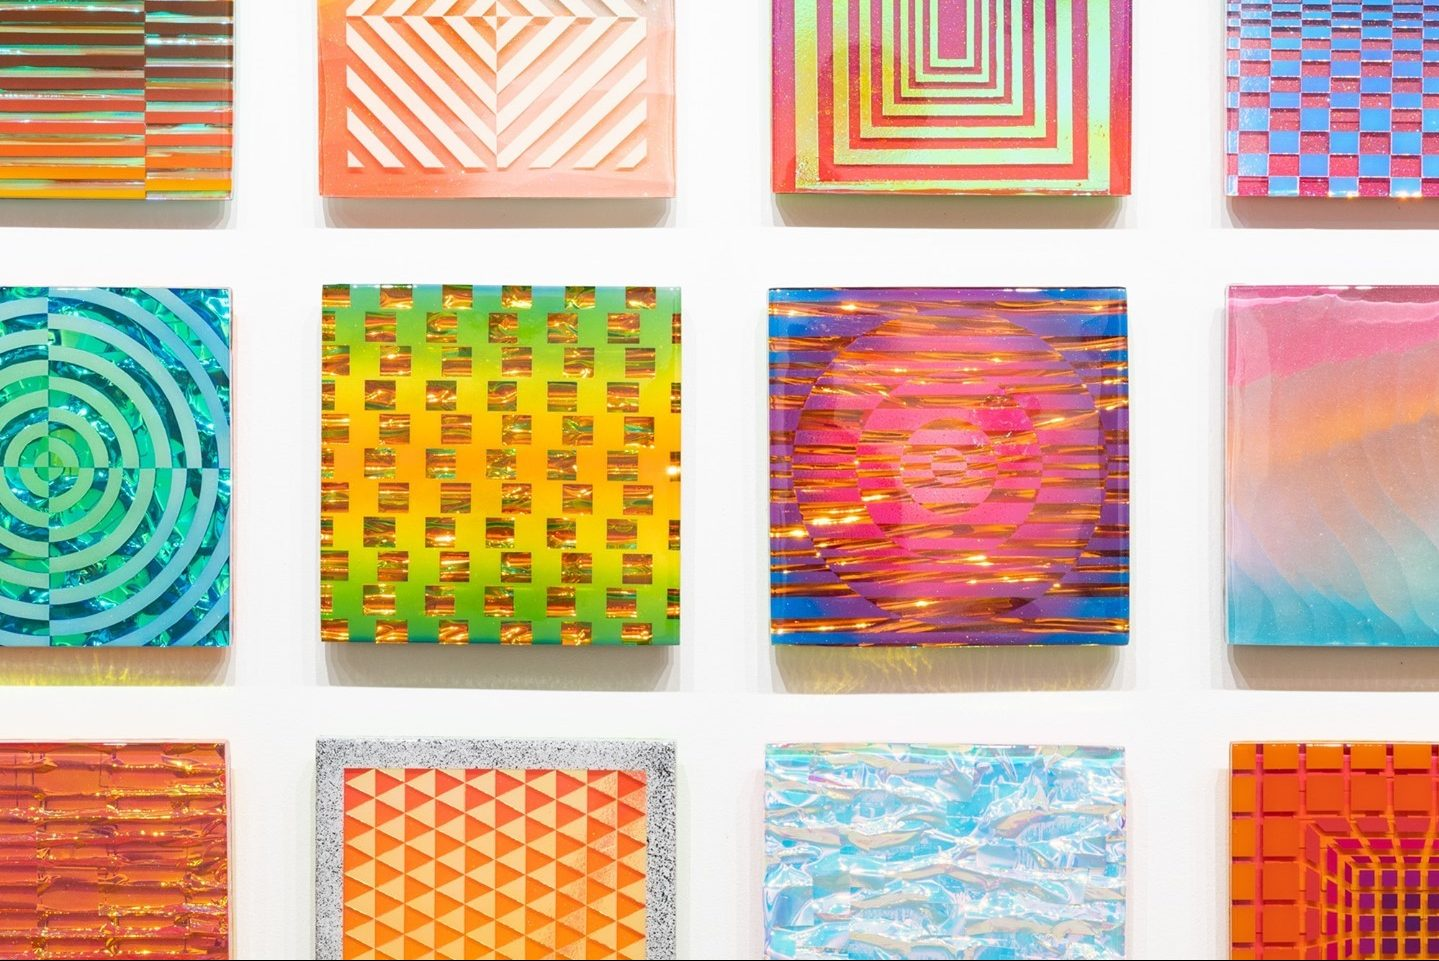 Arranged in perfect rows, these dazzling square pieces glitter against their white wall and tantalize, like a glossy, unwrapped hard candy, with their patterns, colors, and trick of the eye.